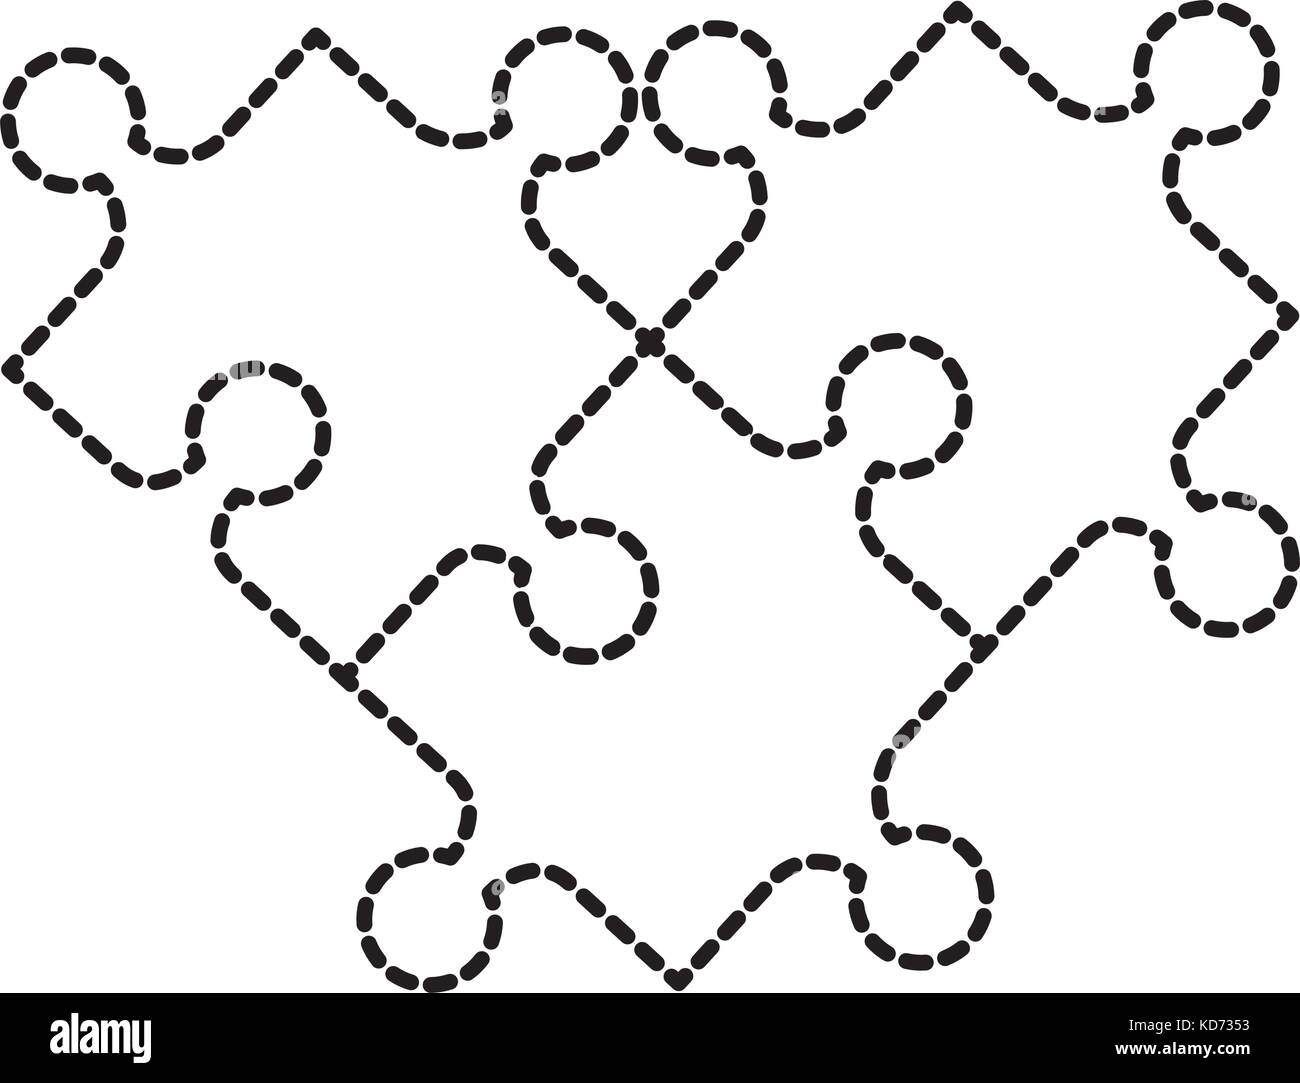 puzzle jigsaw toy pieces connection game Stock Vector